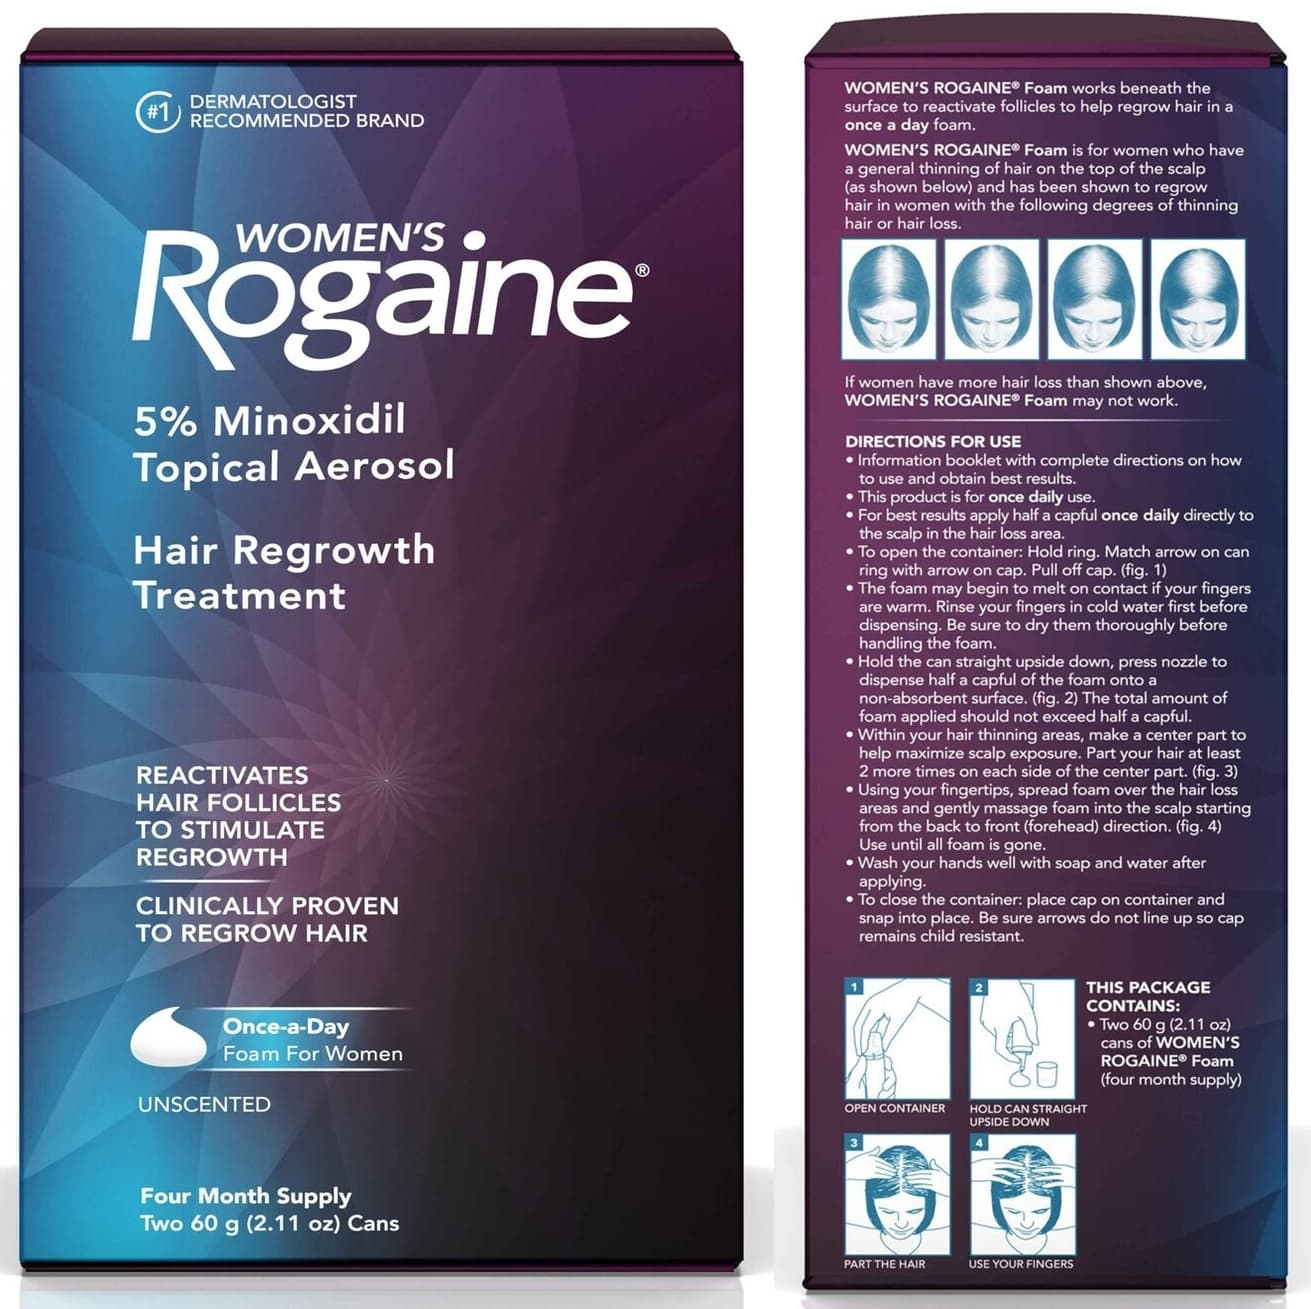 Revive hair follicles to regrow thicker, fuller, younger-looking hair